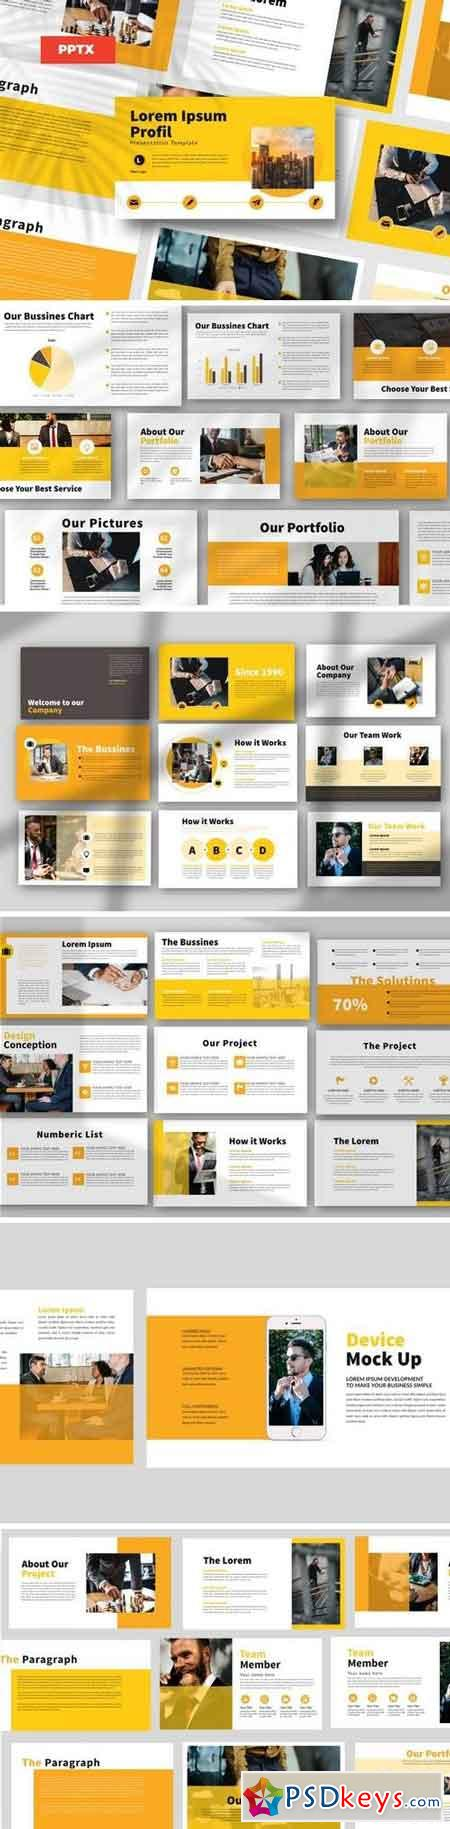 Yellow Bussiness - Powerpoint, Keynote, Google Sliders Templates